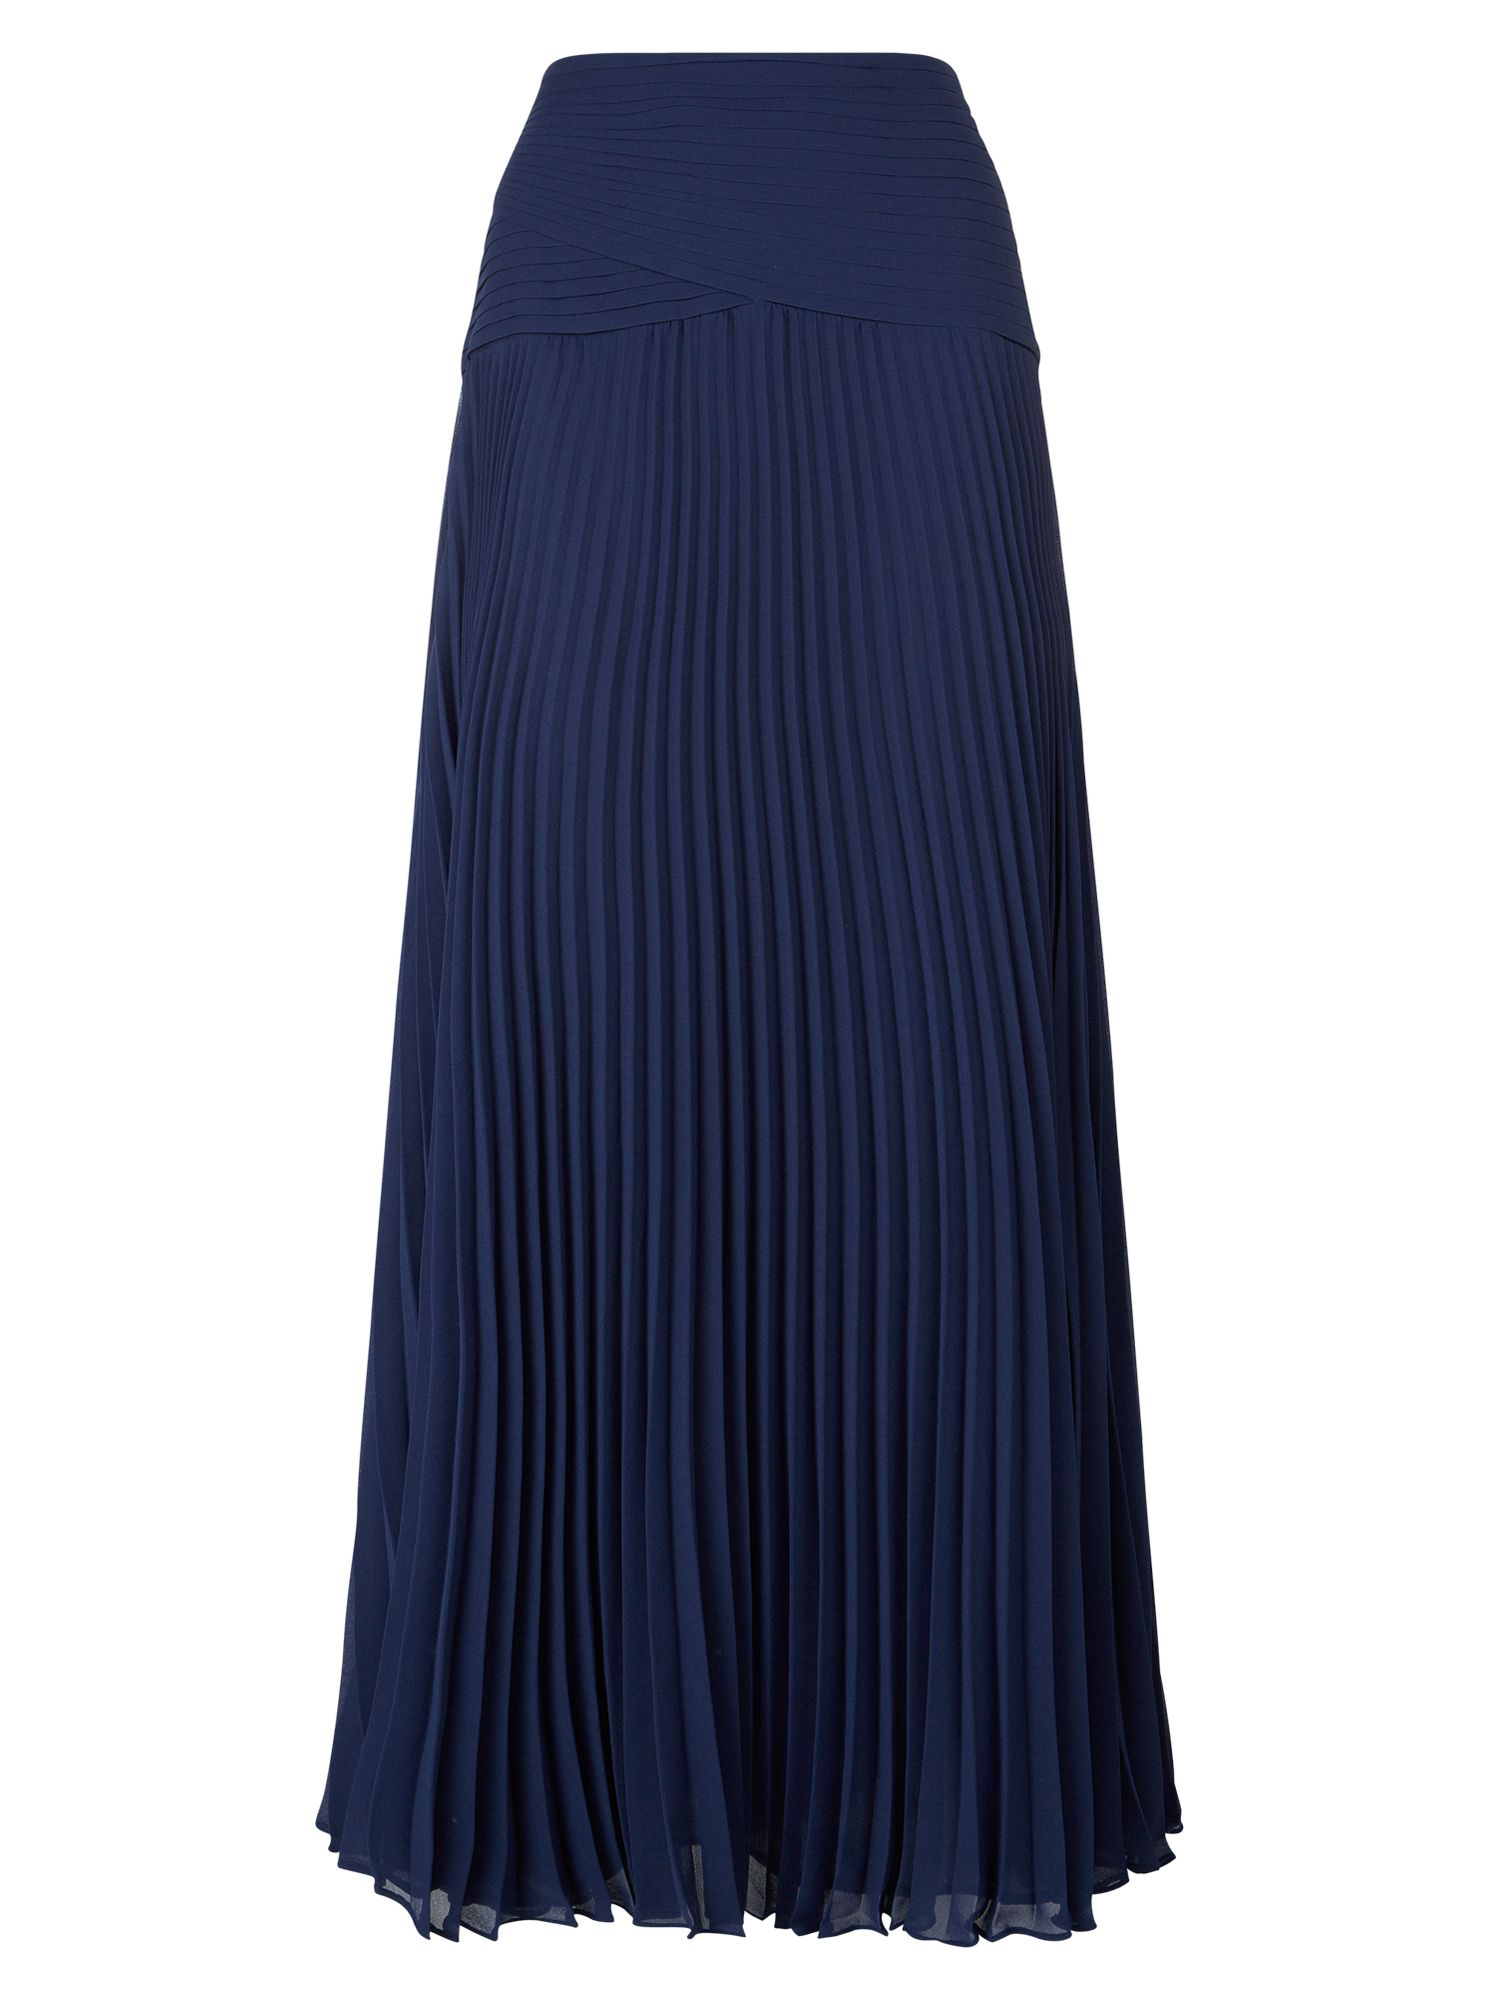 Jacques vert Navy Pleated Maxi Skirt in Blue | Lyst